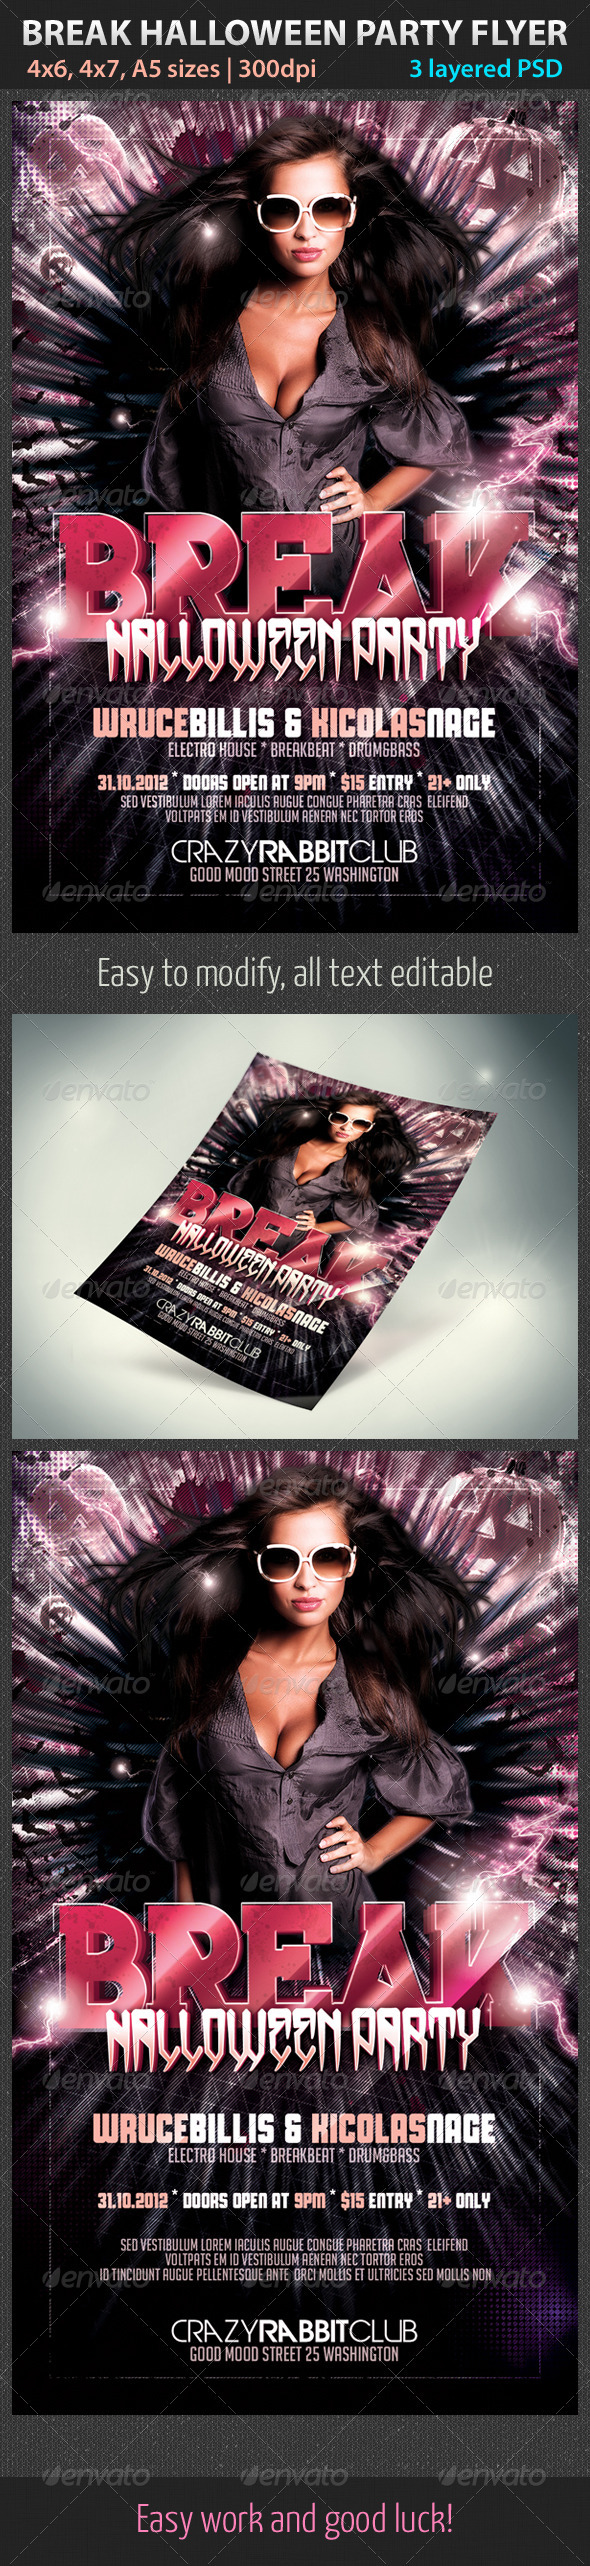 Break Halloween Party Flyer - Clubs & Parties Events